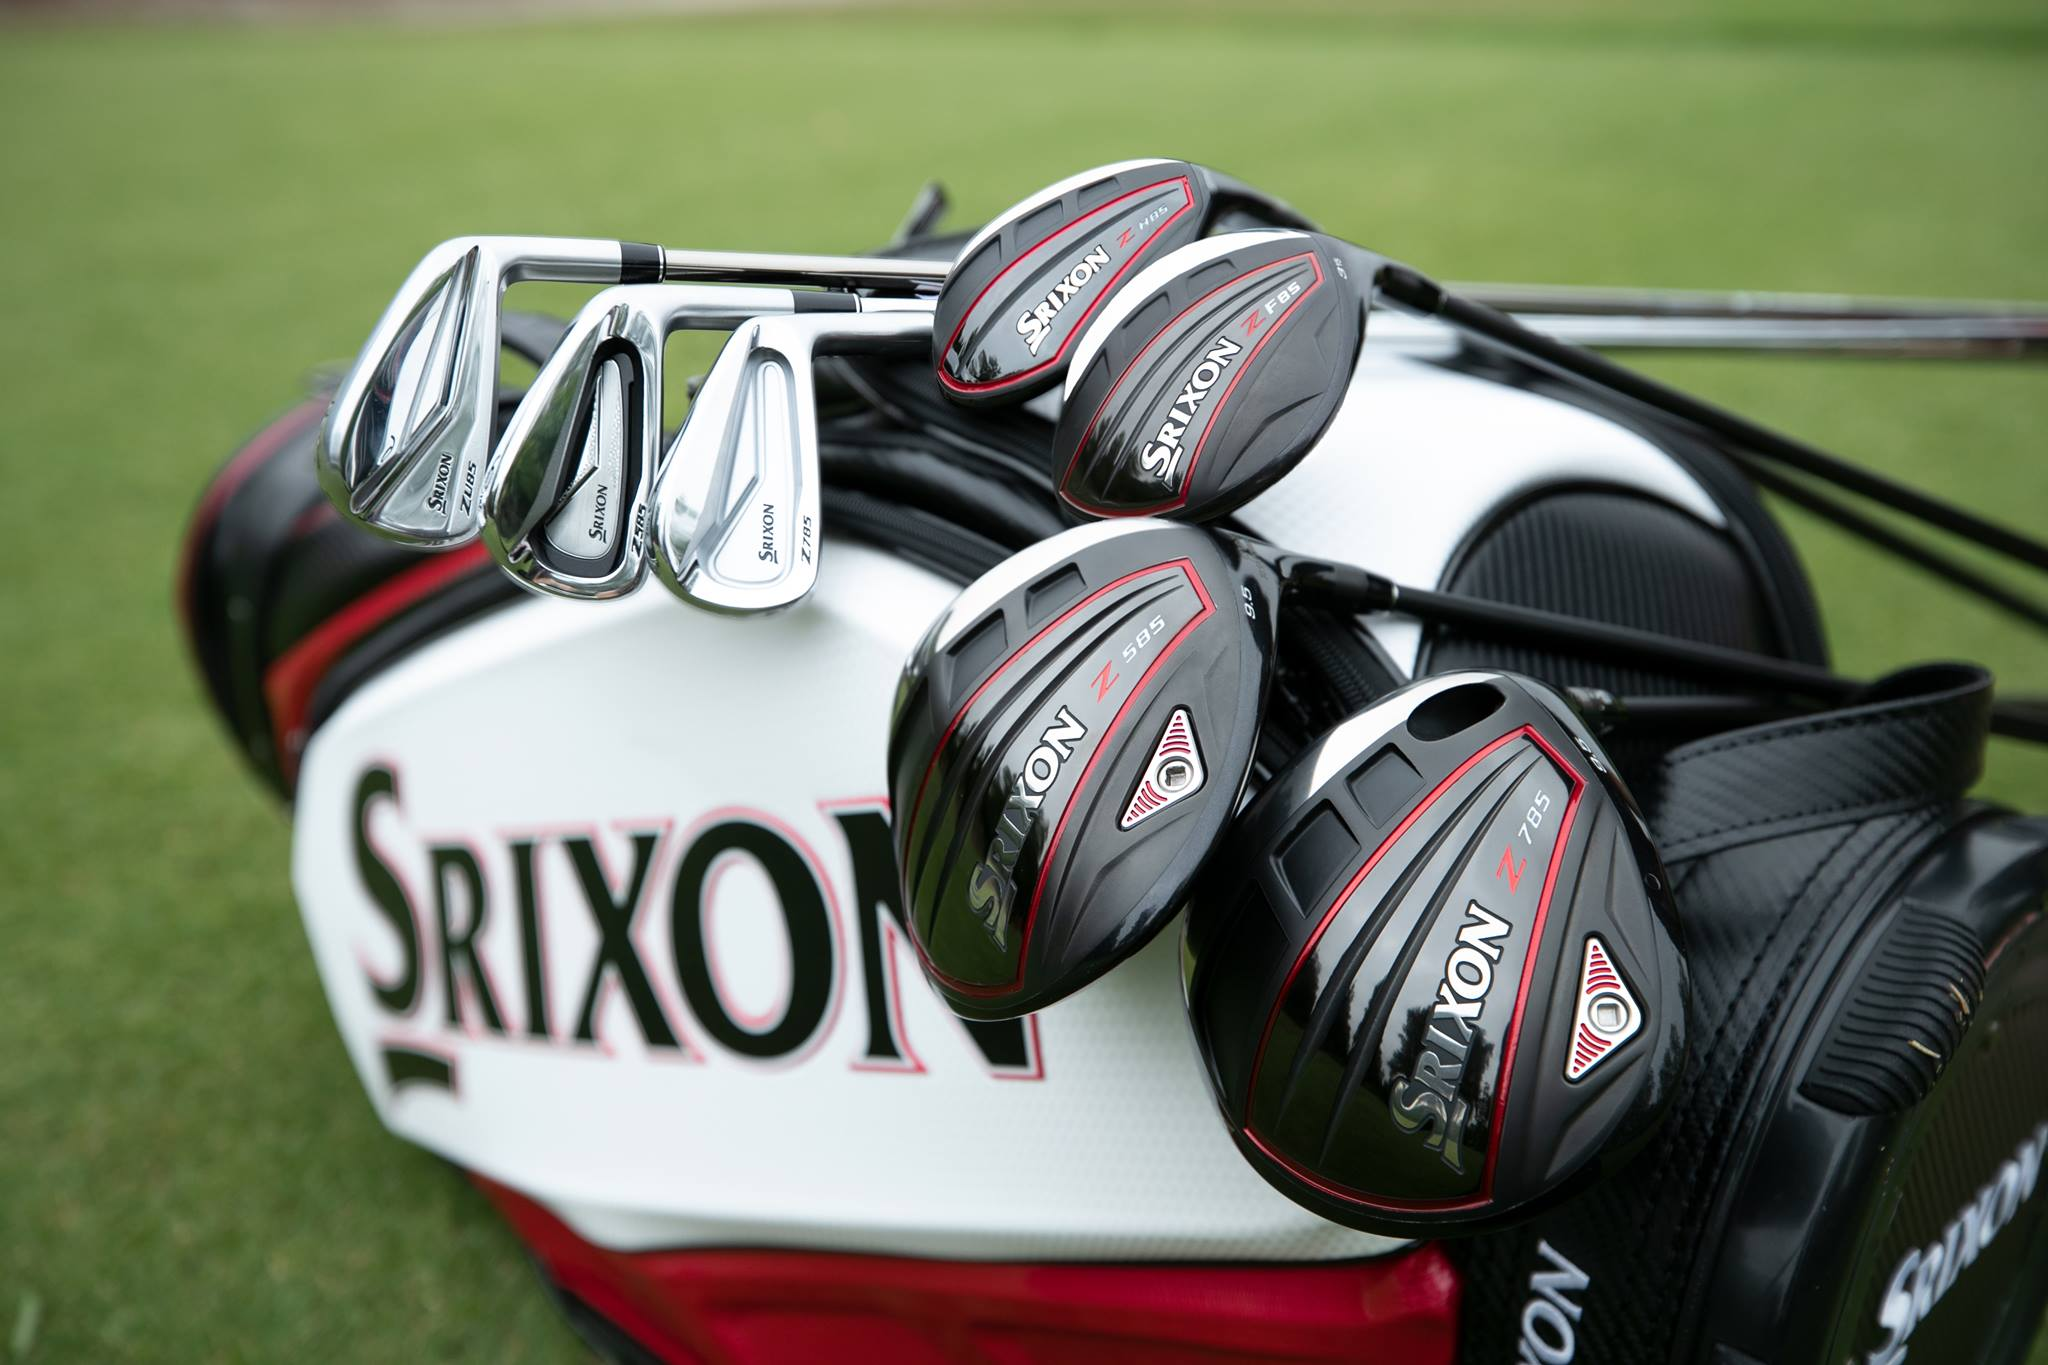 Srixon Golf Ball Fitting at Merchantville Country Club - August